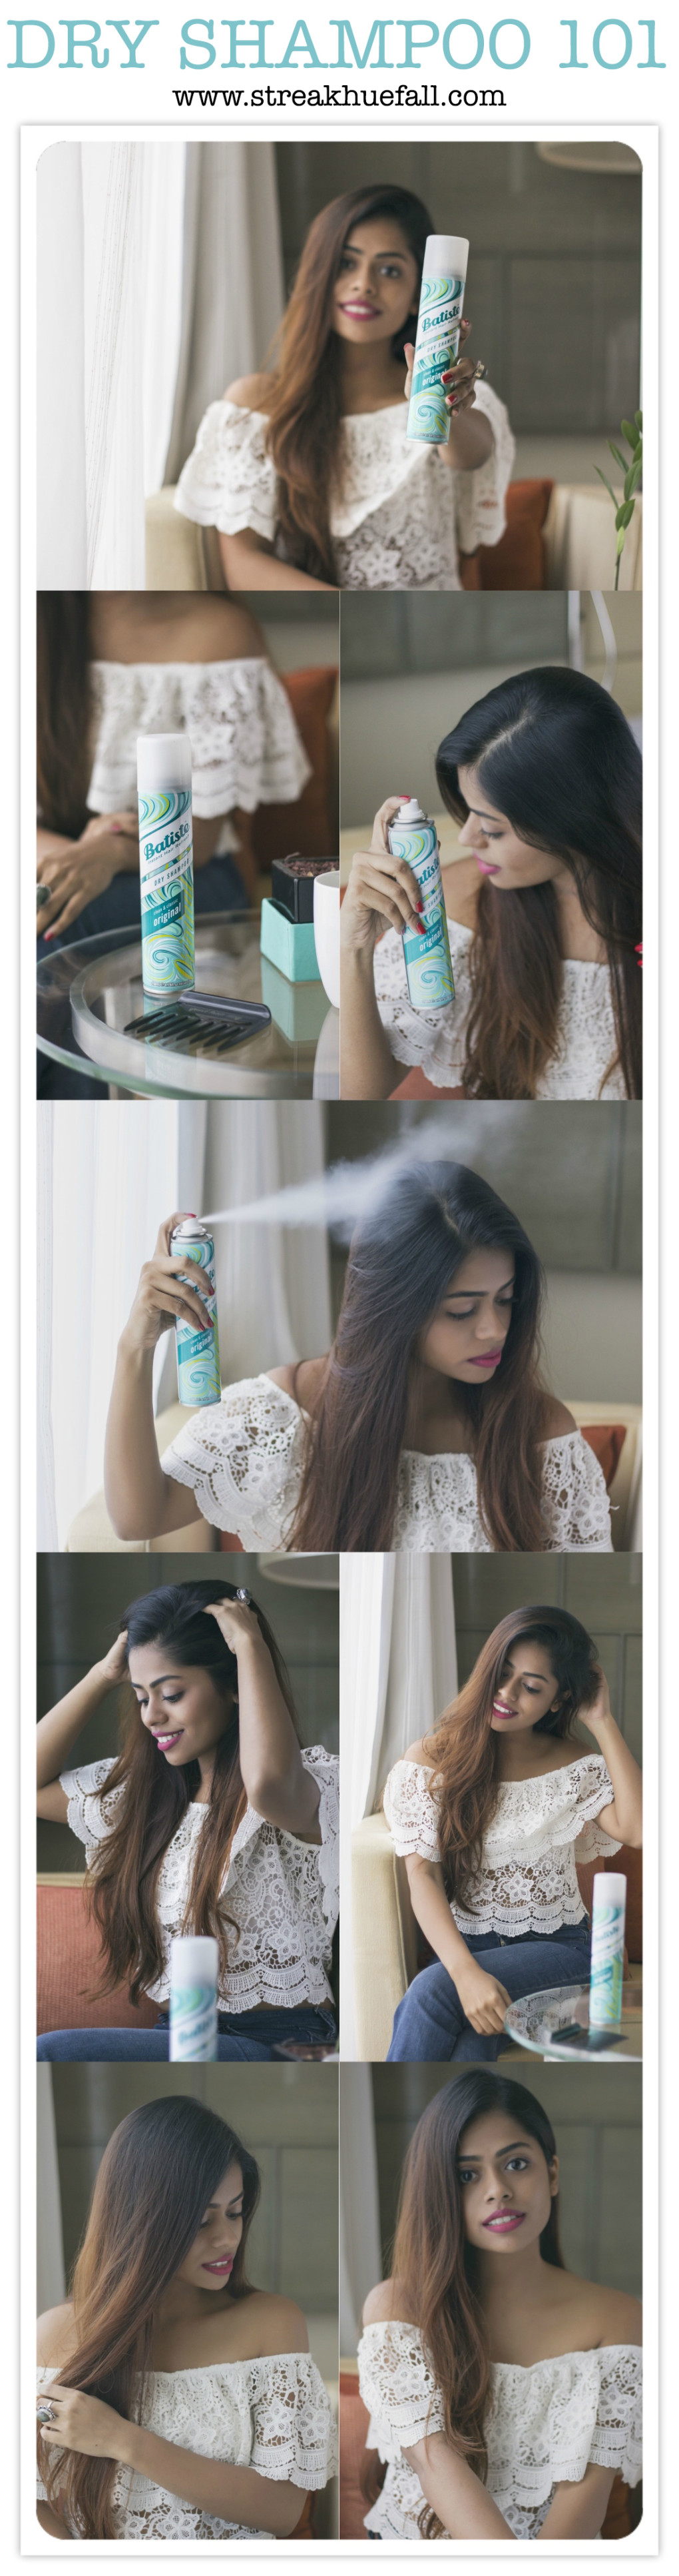 Dry Shampoo 101 with Batiste